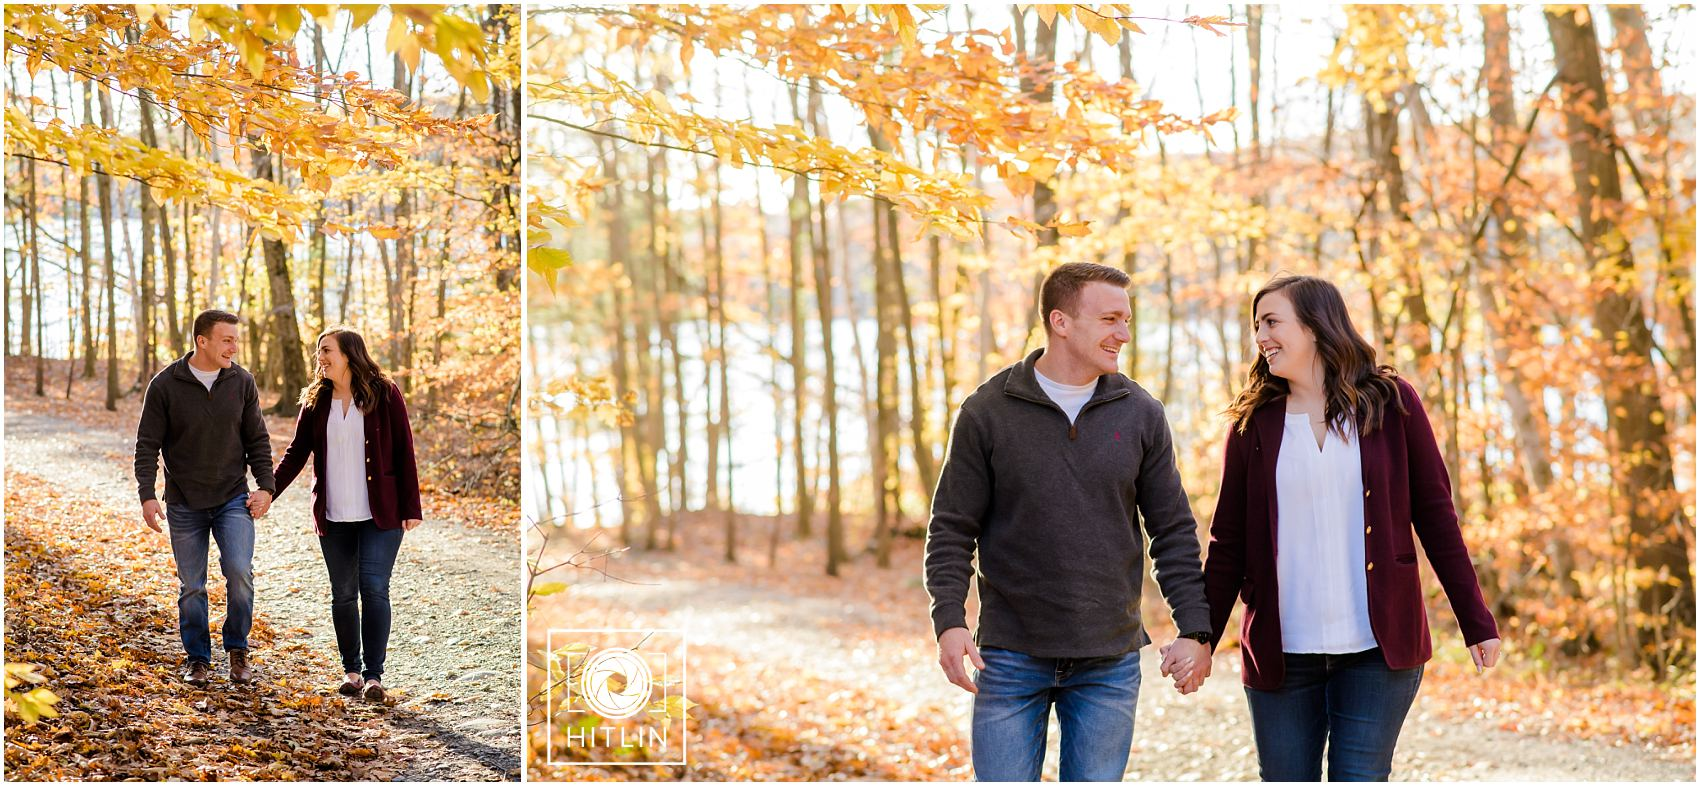 Amy & Joe's Engagement Session